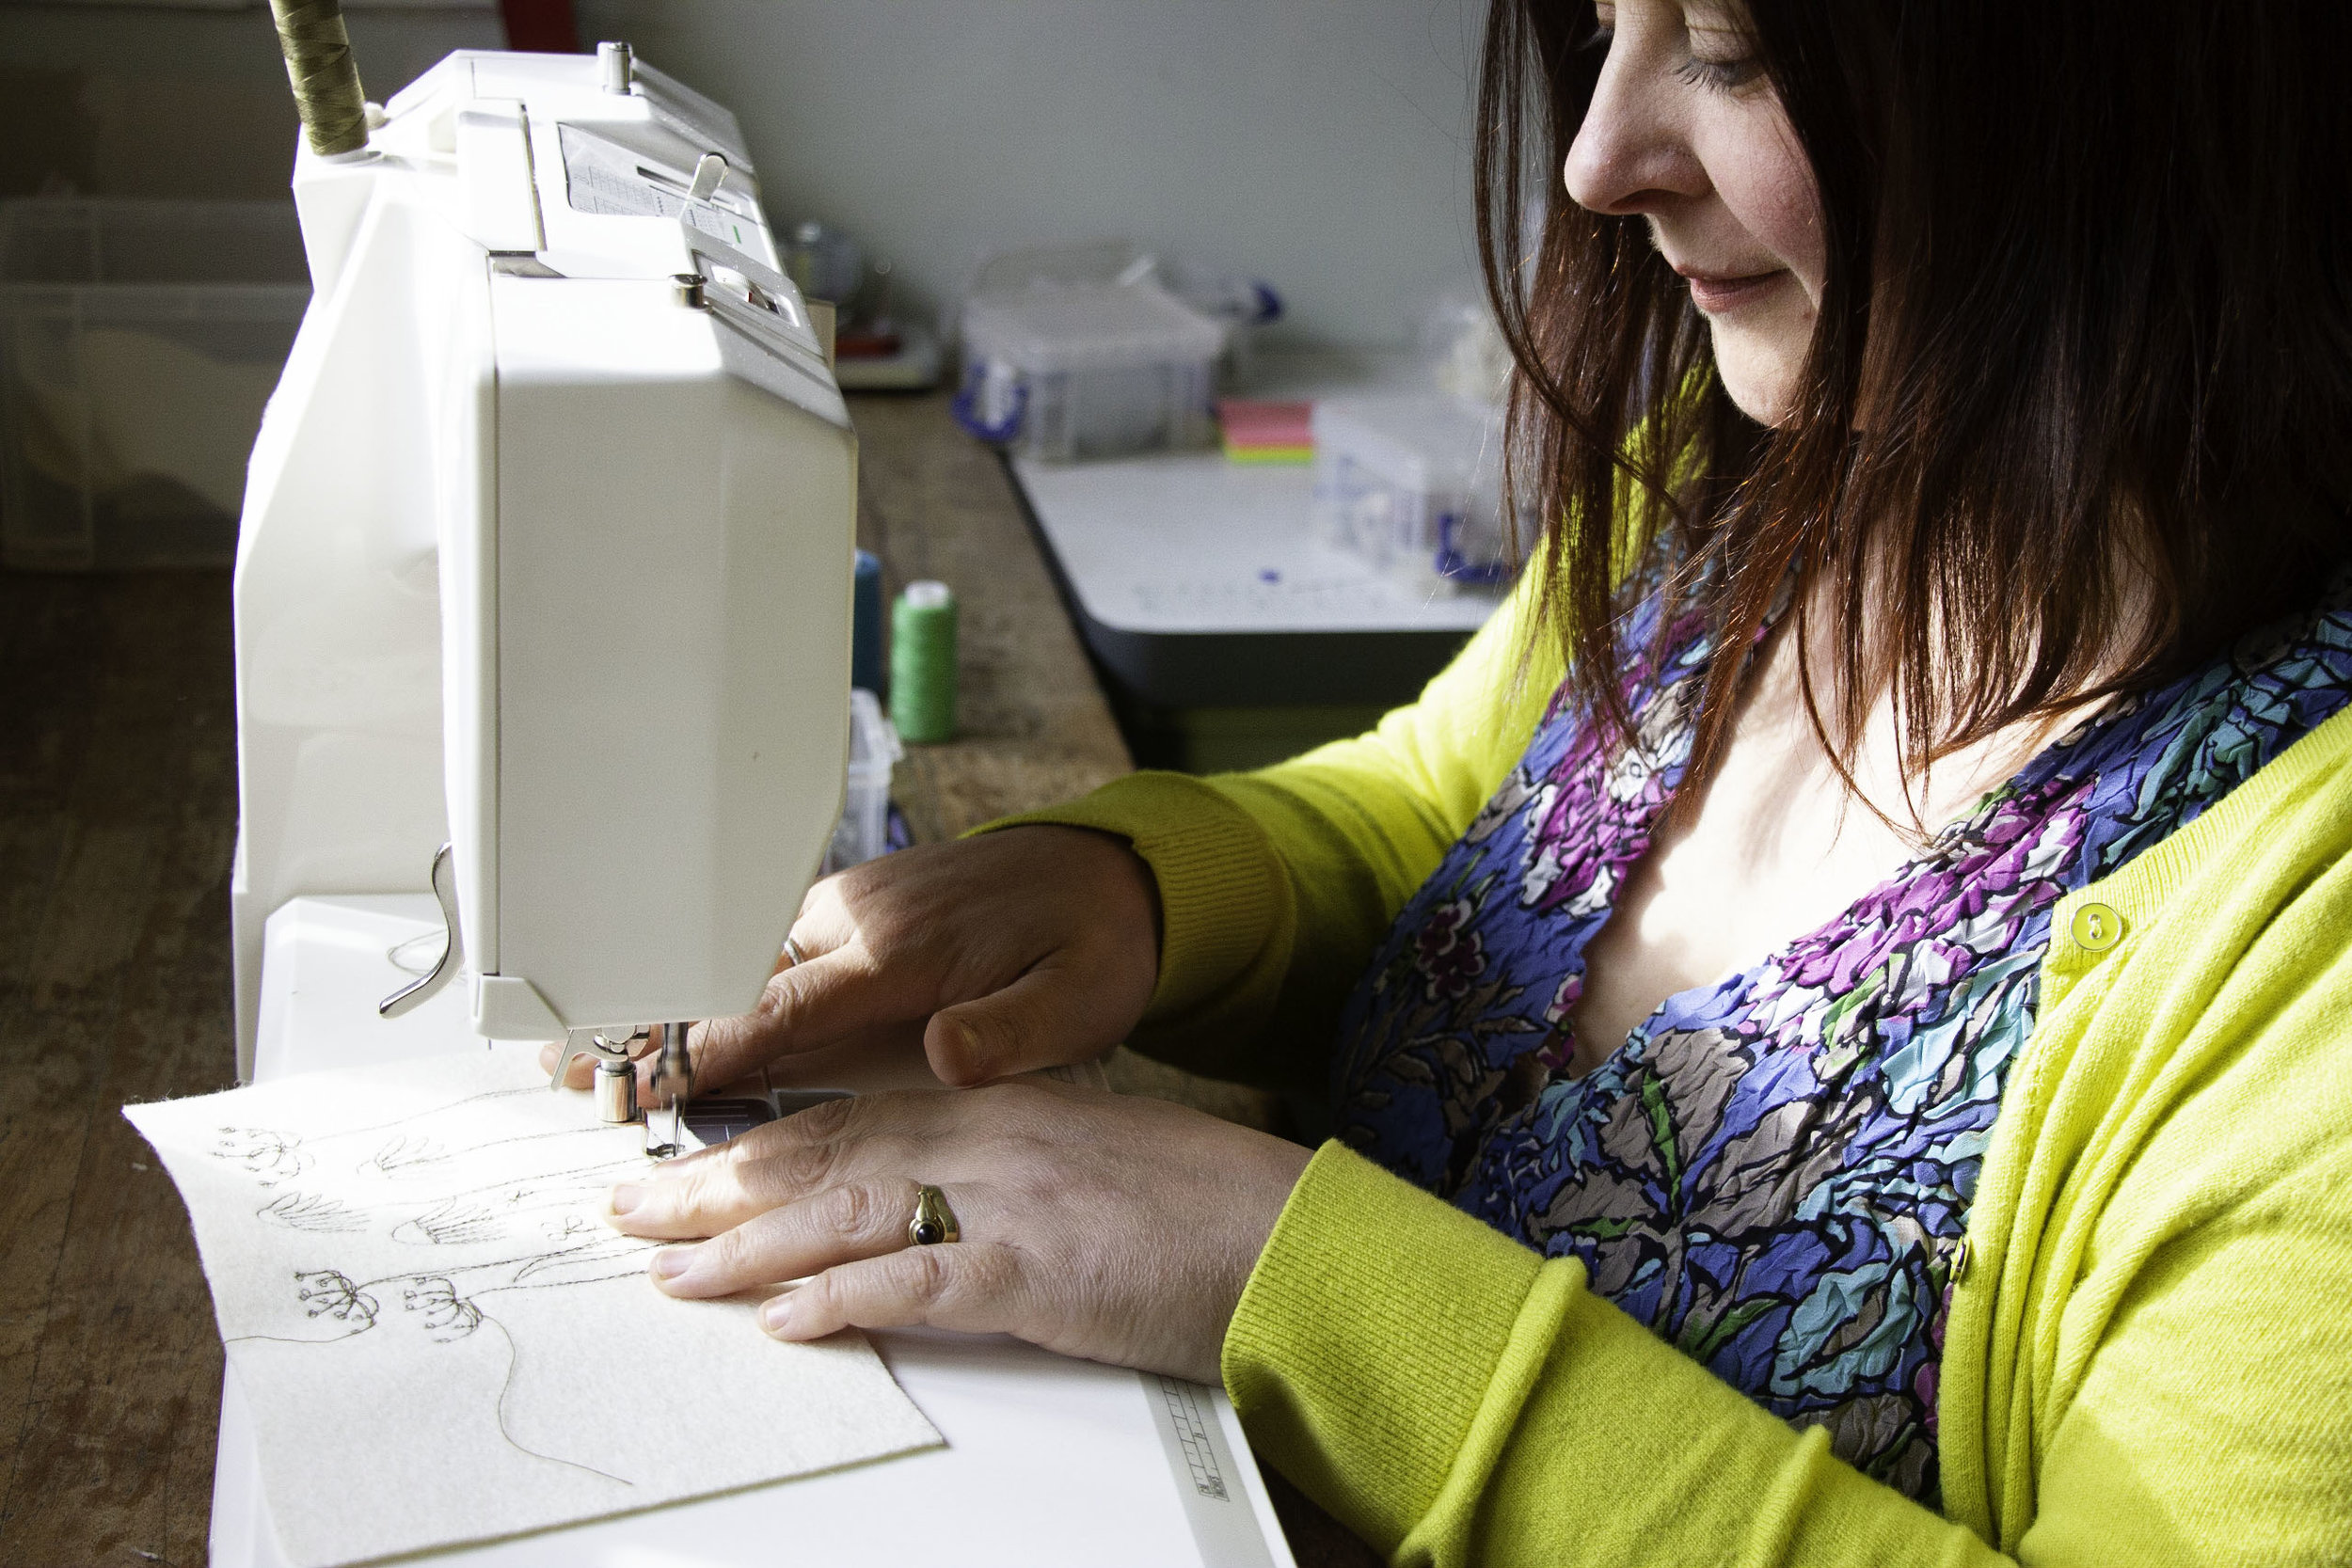 jane sewing.jpg